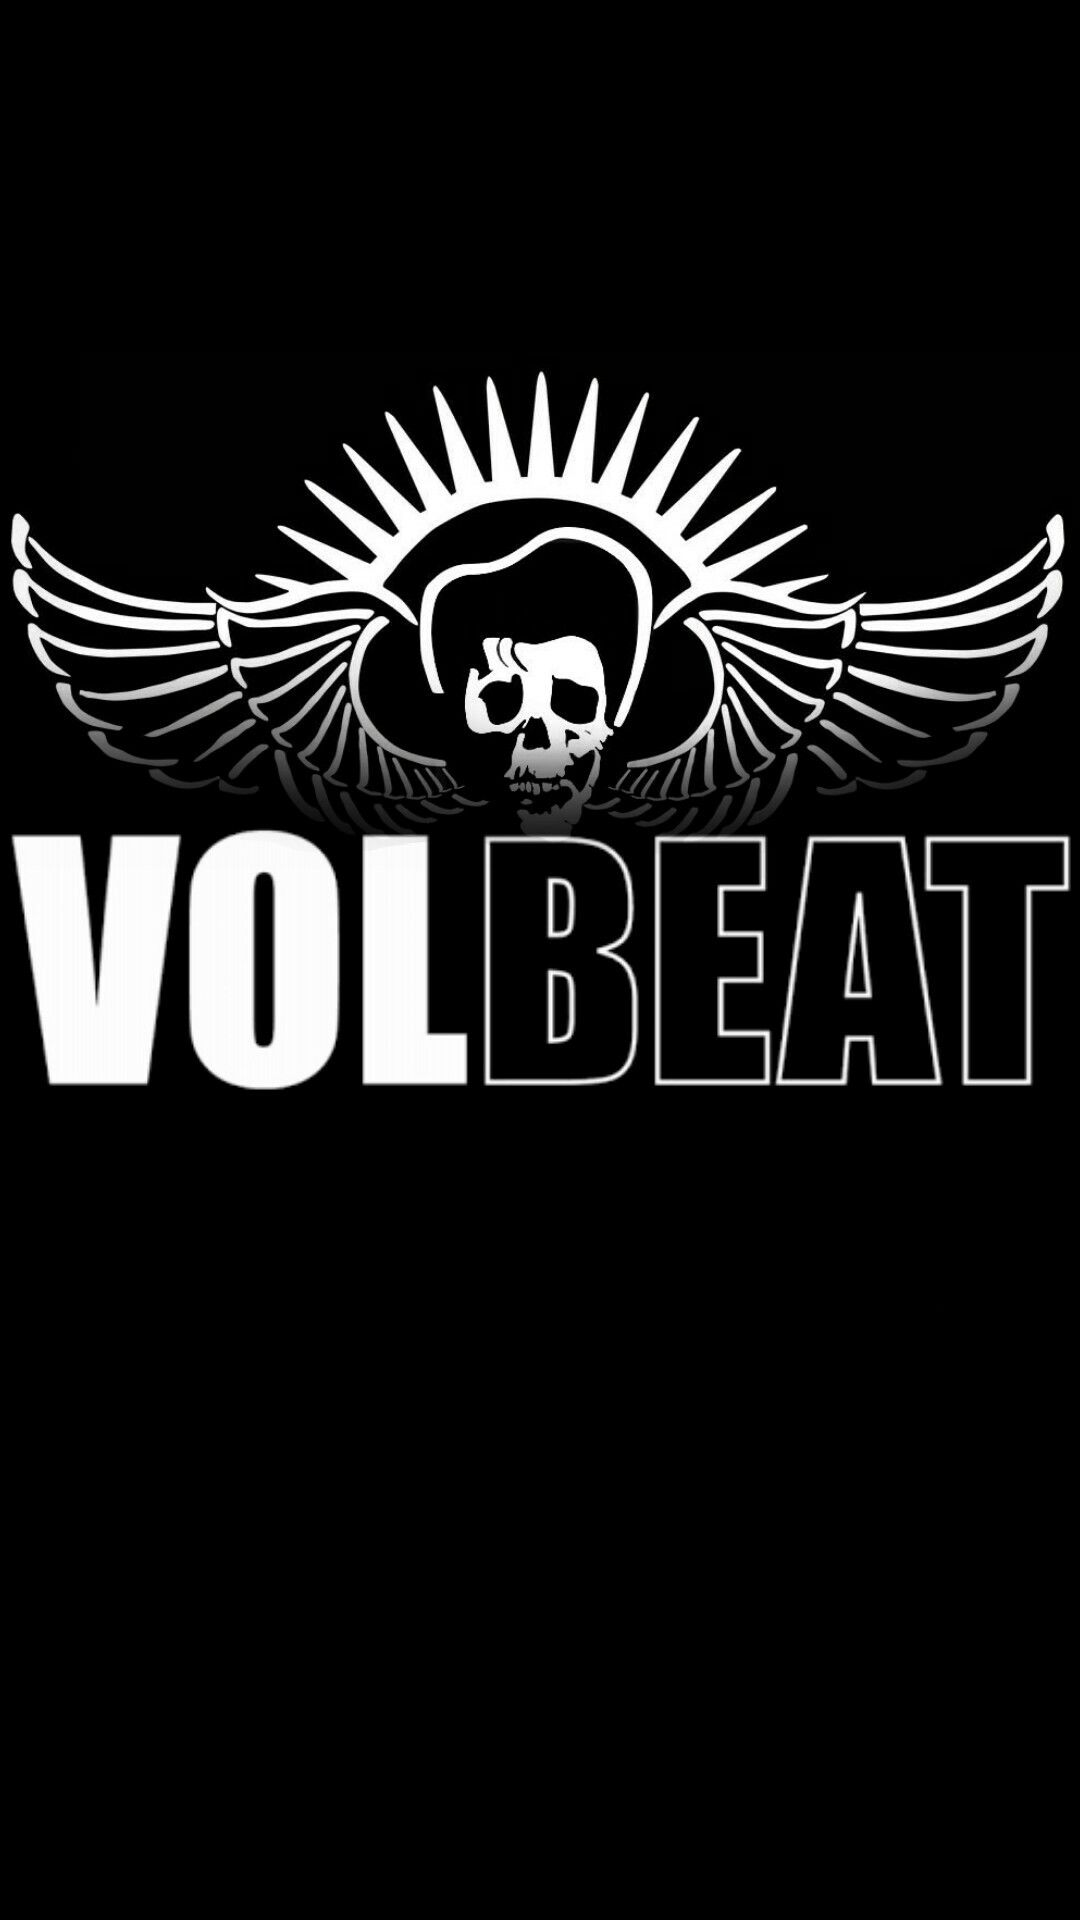 Volbeat Hd 720p Wallpaper Band Wallpapers Band Posters Wallpaper Pictures